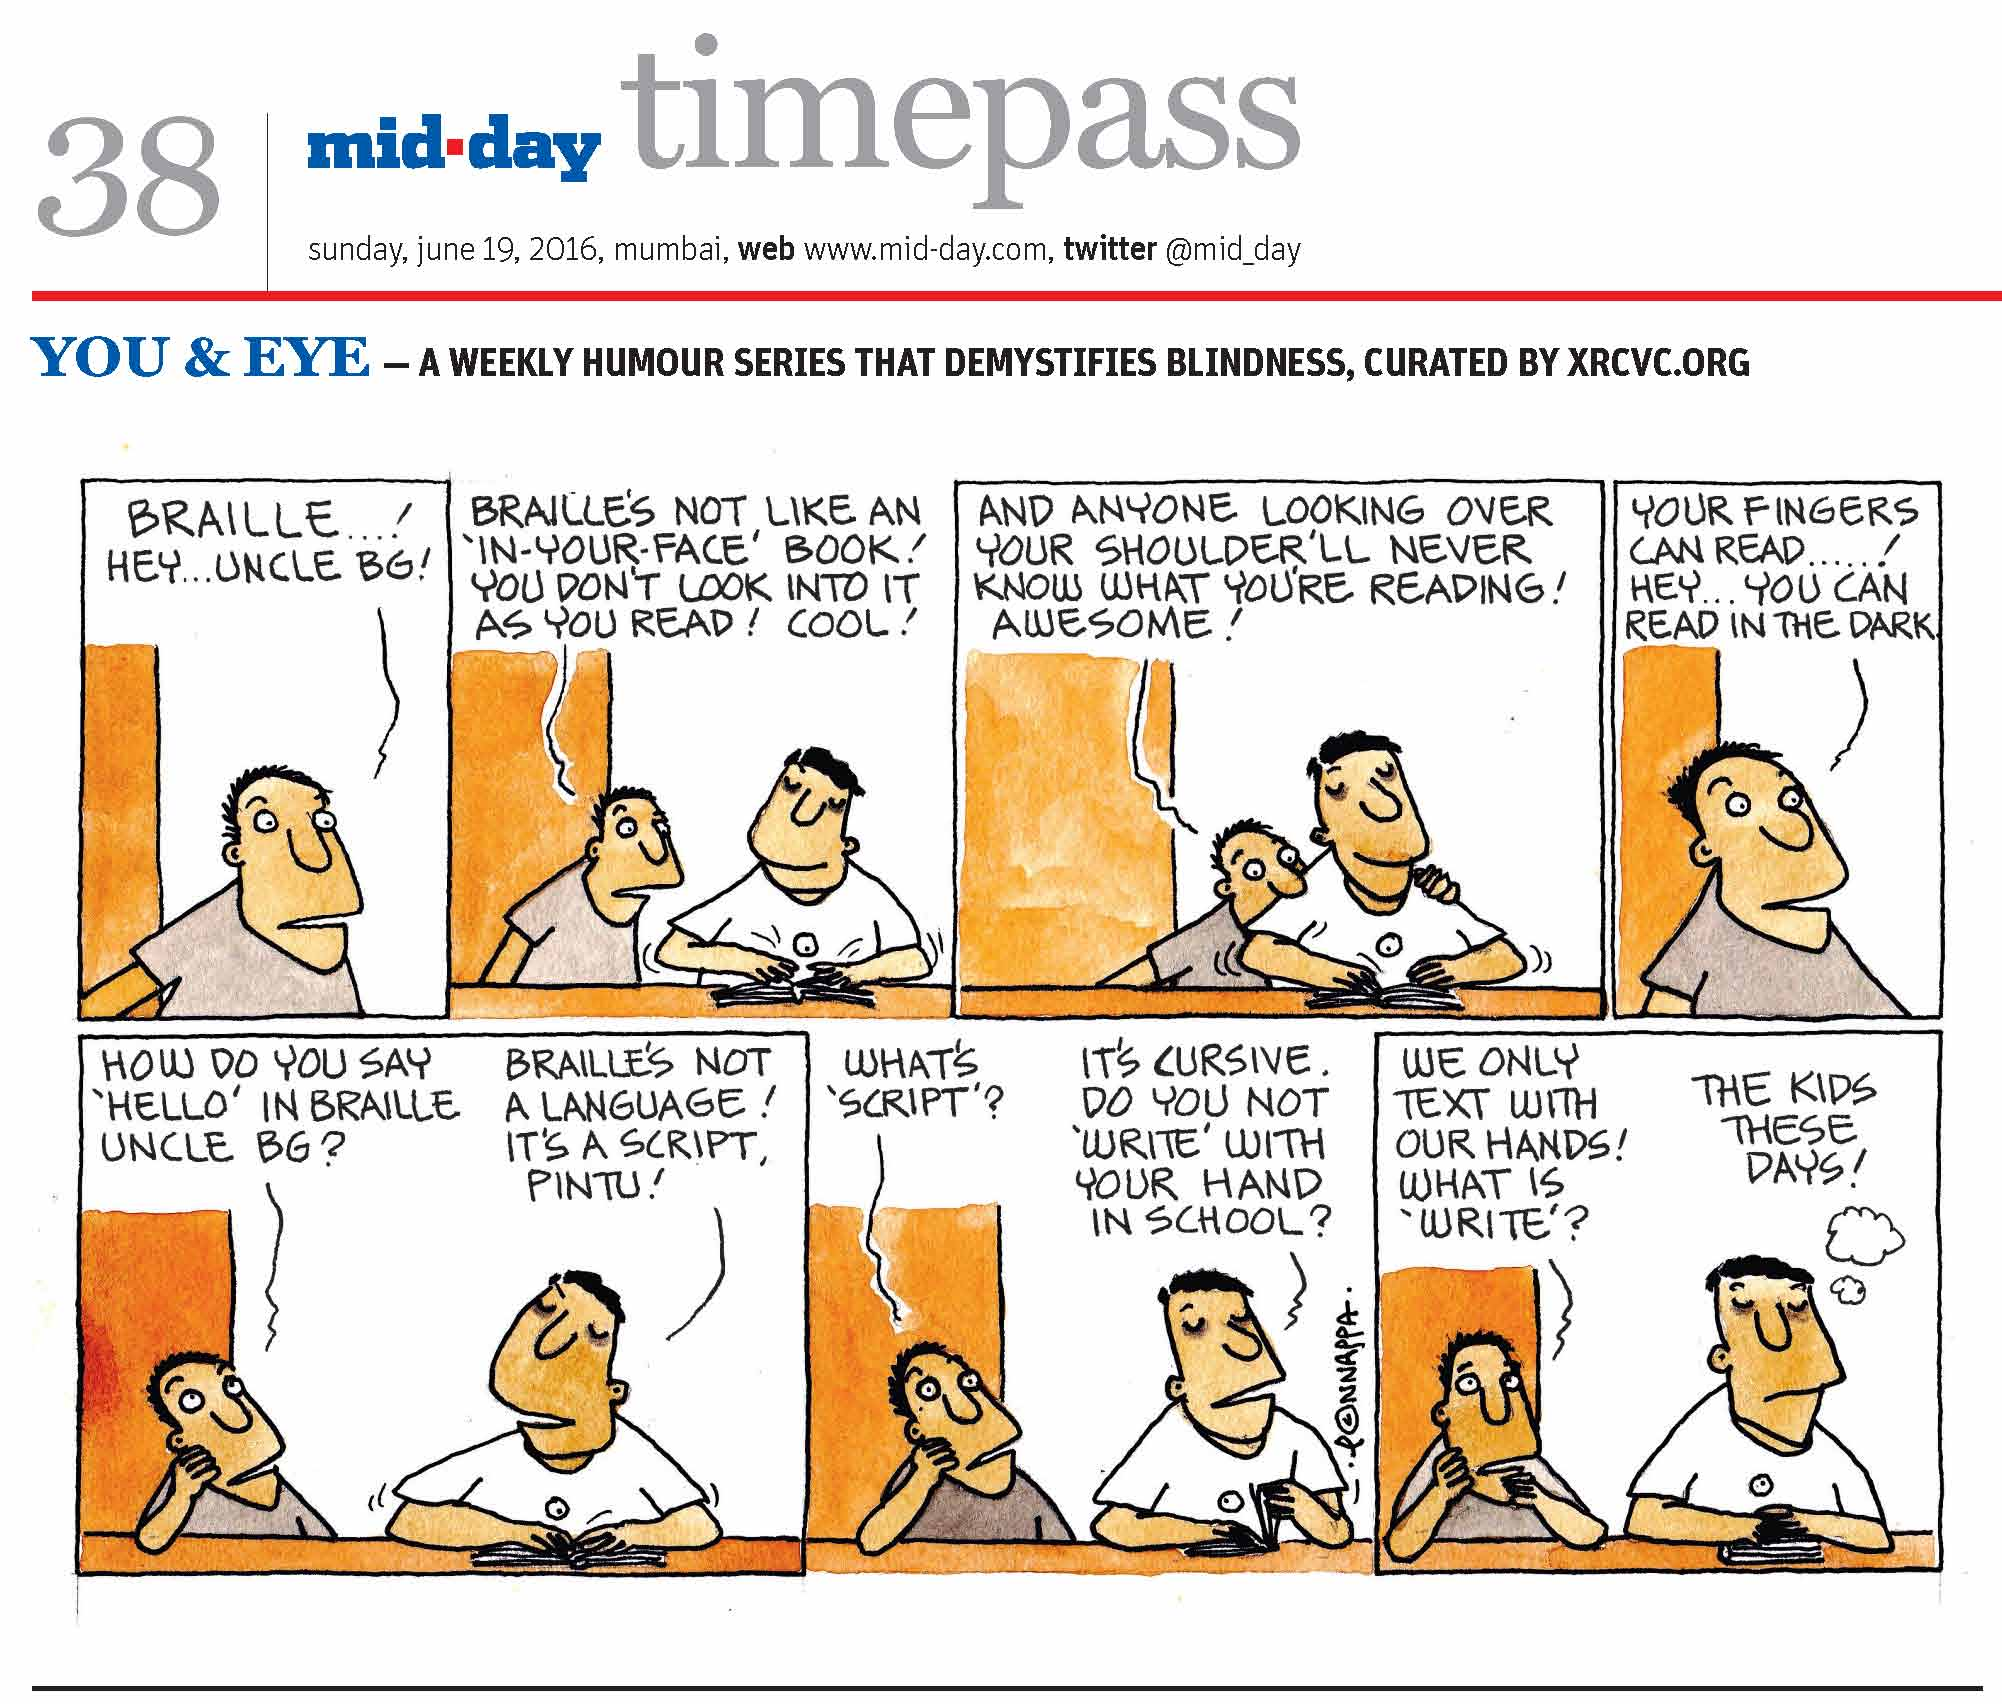 Page 38 mid-day timepass, sunday, june 19, 2016, mumbai, web: www.mid-day.com, twitter @mid_day, YOU & EYE � A WEEKLY HUMOUR SERIES THAT DEMYSTIFIES BLINDNESS, CURATED BY XRCVC.ORG Image description: A cartoon strip with 7 frames� Frame 1: (A sighted boy speaking) The sighted boy: Braille�! Hey� Uncle BG! Frame 2: (The sighted nephew � Pintu � standing to the right of the visually impaired man � BG � as he sits at a table reading from a book) Pintu: Braille's not like an 'in-your-face' book! You don't look into it as you read! Cool! Frame 3: (Pintu peeping from behind BG's shoulder while BG is seated at a table reading a book) Pintu: And anyone looking over your shoulder'll never know what you're reading! Awesome! Frame 4: (Pintu speaking) Pintu: Your fingers can read�! Hey� you can read in the dark! Frame 5: (Pintu sitting to the right of BG wondering) Pintu: How do you say 'Hello' in Braille, Uncle BG? BG: Braille's not a language! It's a script, Pintu! Frame 6: (Pintu sitting to the right of BG wondering) Pintu: What's 'script'? BG: It's cursive. Do you not 'write' with your hand in school? Frame 7: (Pintu seemingly confused as he sits to the right of BG) Pintu: We only text with our hands! What is 'write'? BG: The kids these days! (Signed Ponnappa, in Frame 6)